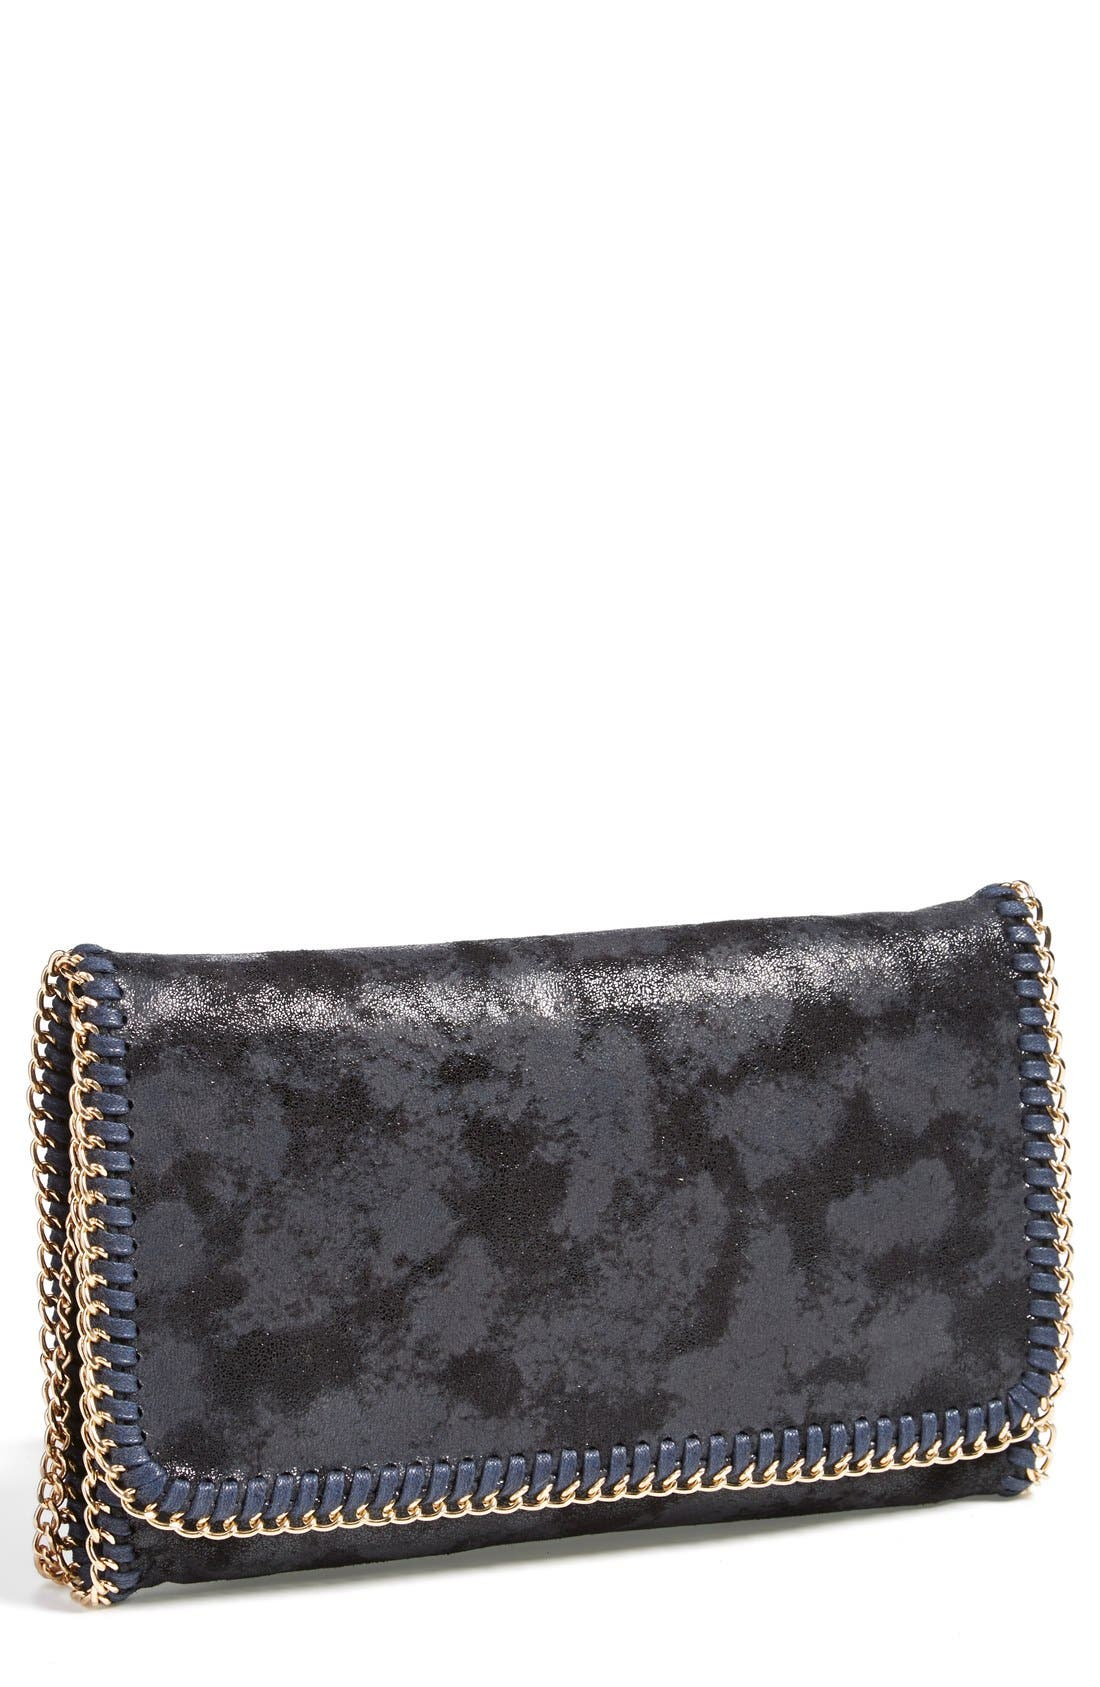 Alternate Image 1 Selected - Phase 3 'Crackle' Clutch